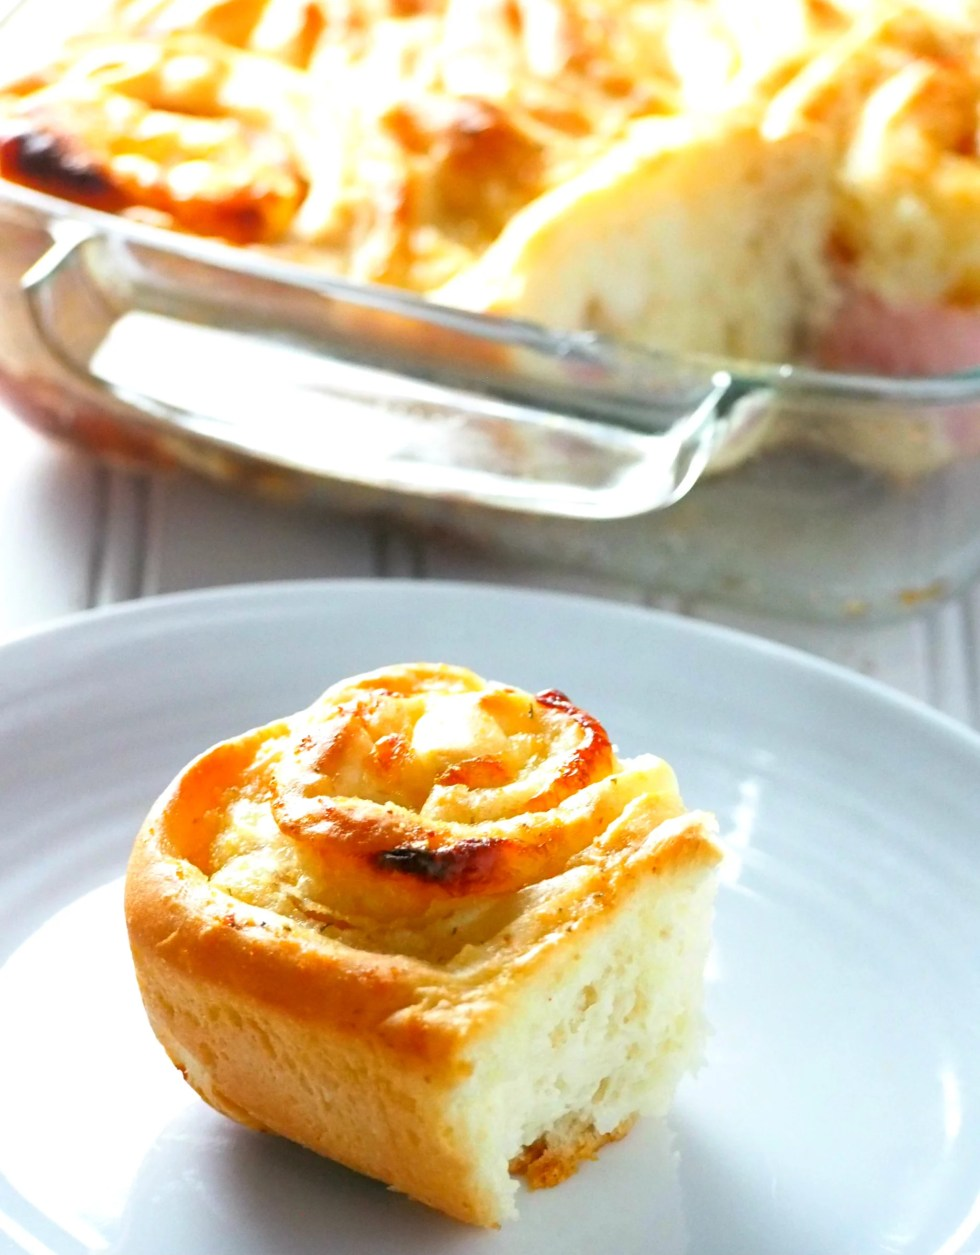 Flavorful, soft and garlicky ham and cheese rolls to fill you up at breakfast, lunch or snack time.